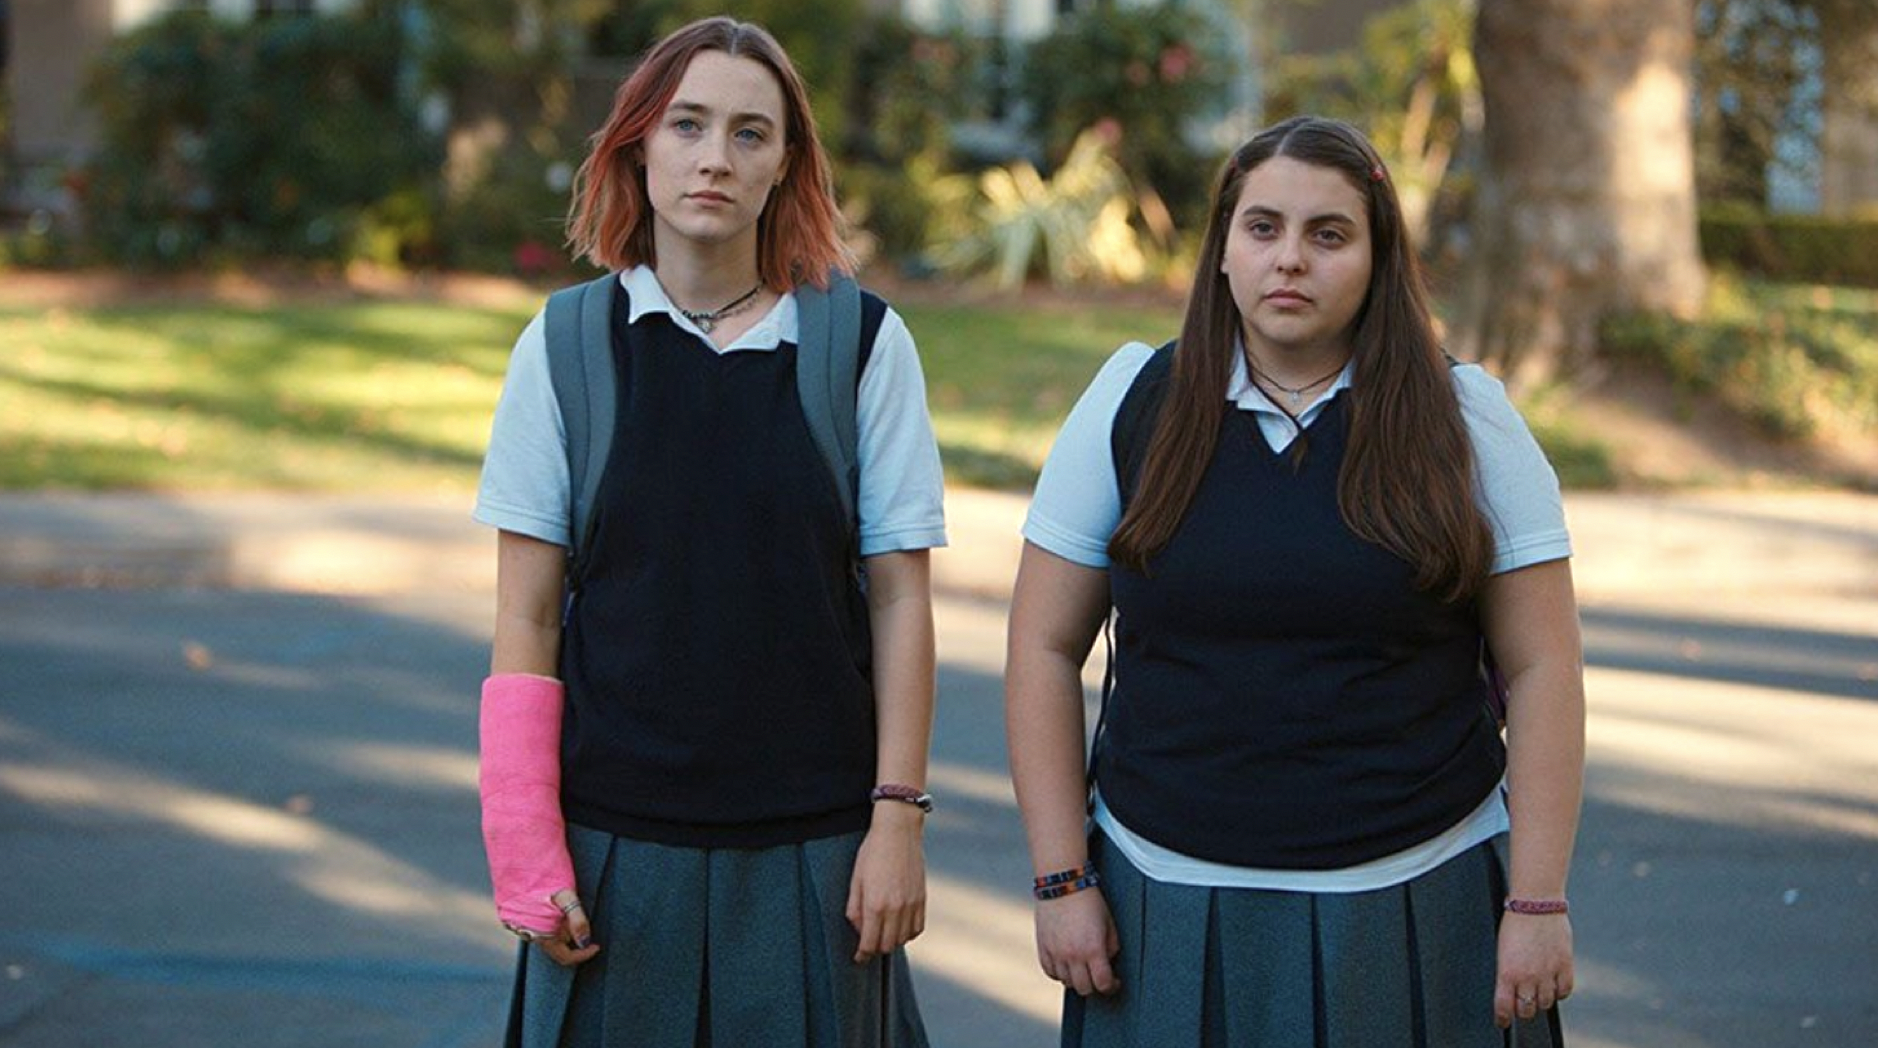 Figure 3.: Lady Bird's ambitions cause her to leave behind long-time friend Julie (Beanie Feldstein).